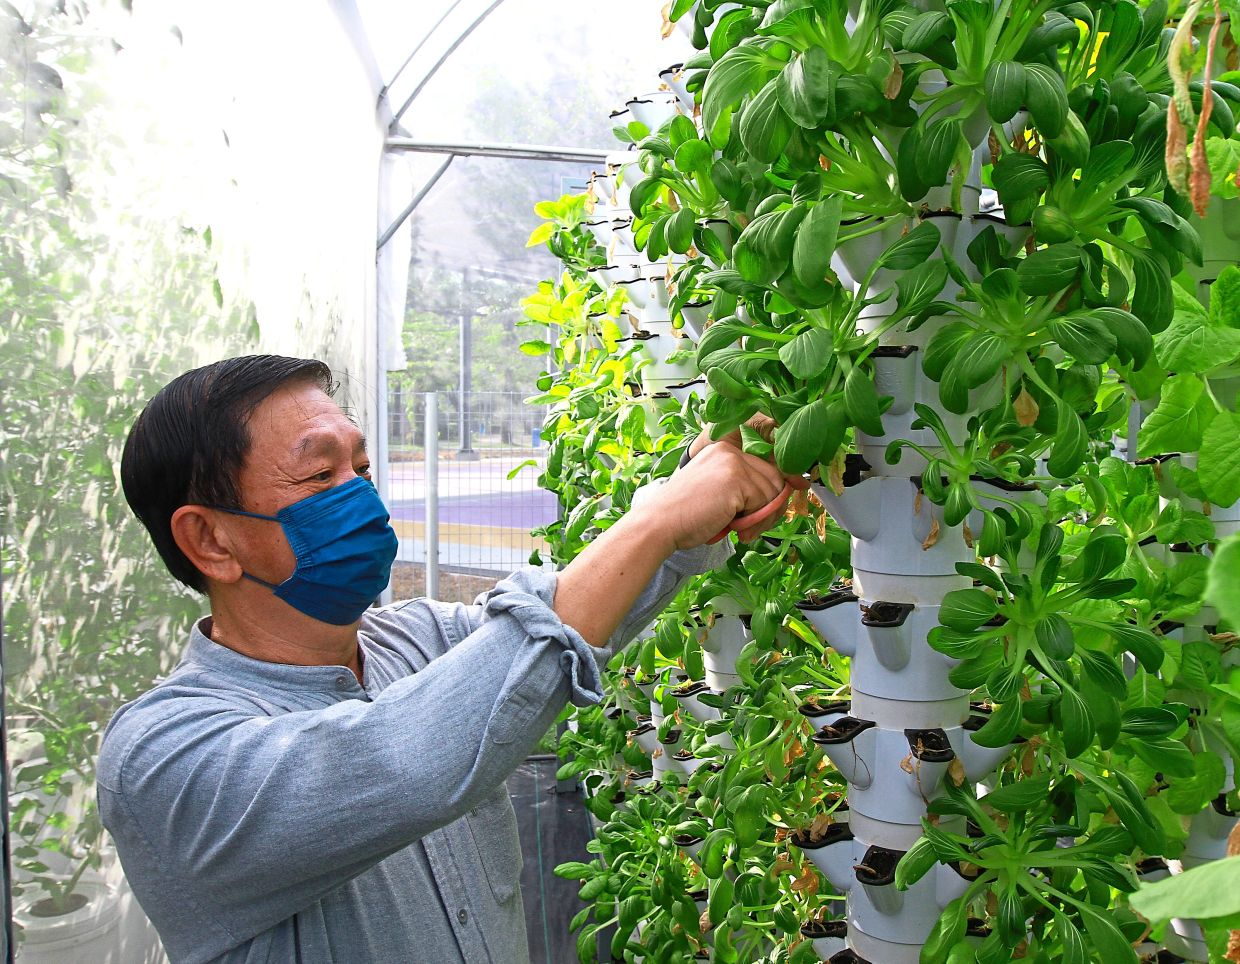 A customer, William Pang, harvesting vegetables that he wants to buy.